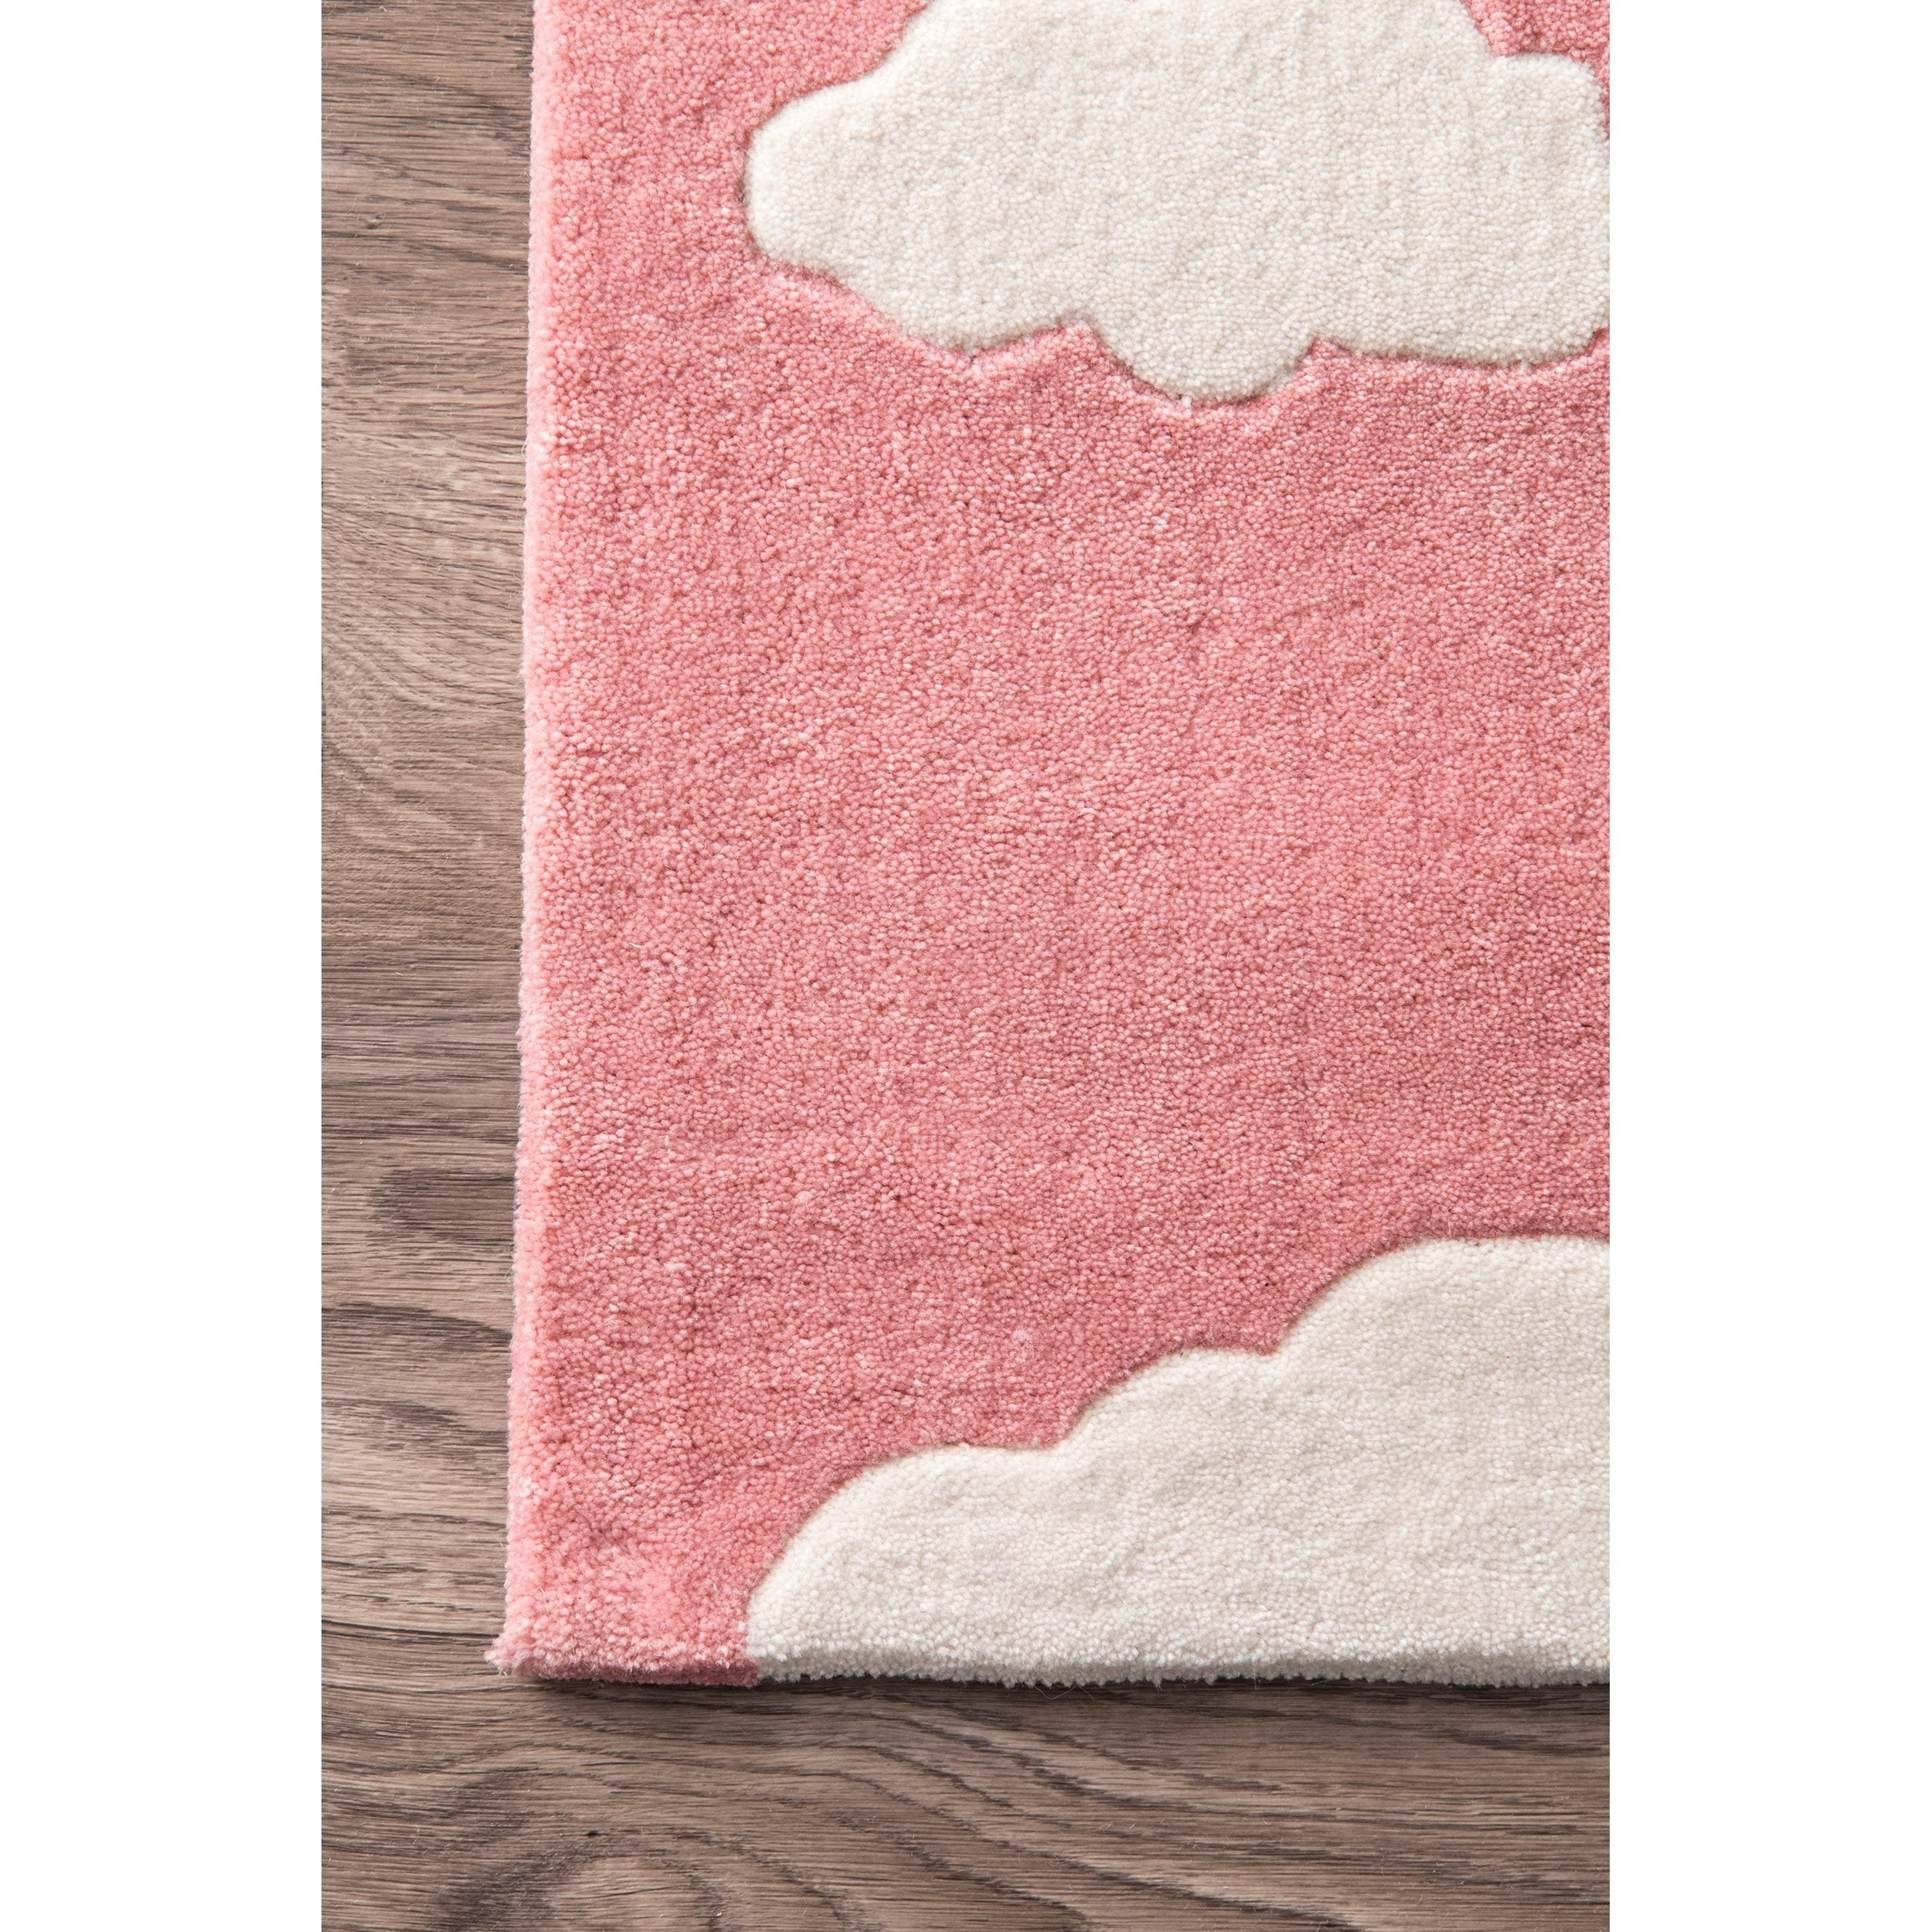 rugs baby roomnspiration pink pinterest safe room modern nursery pictures prettyn led futuristic home wall lights rug mount interior bedroom new preety ideas style house beautiful with nurseries decorating girl decorations decoration project white and design round circle cute about best outstanding for